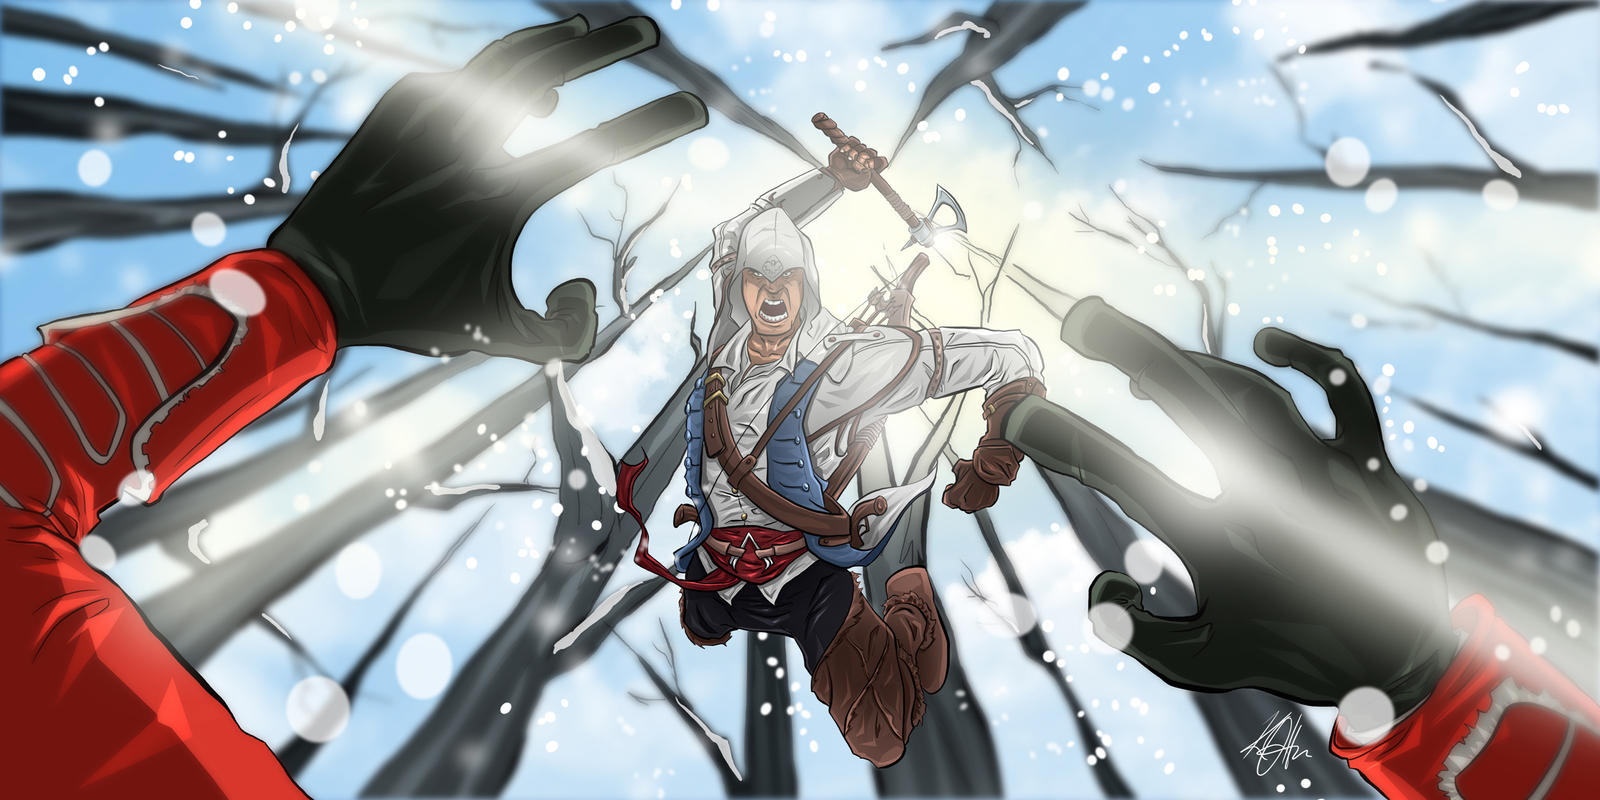 Assassin S Creed 3 Fan Art Contest By Duff03 On Deviantart